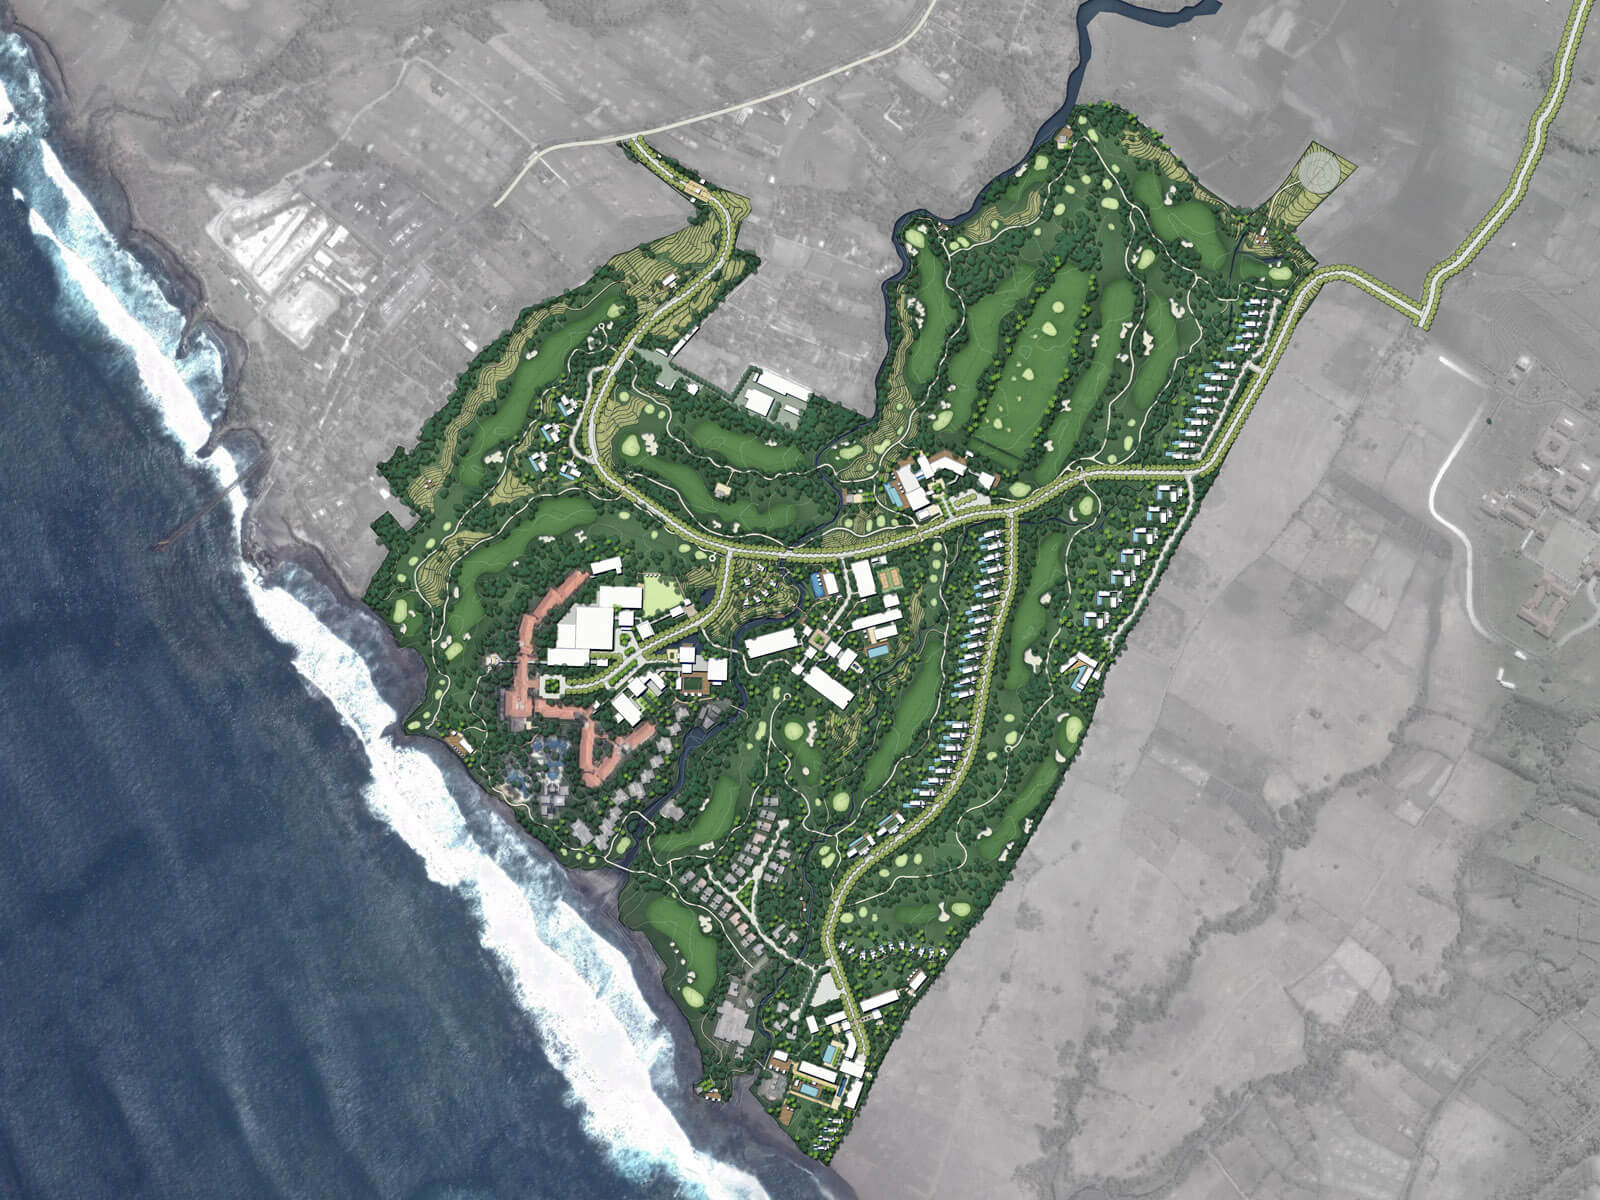 Nirwana bali resort master plan aedas - Hotel design planning and development ebook ...